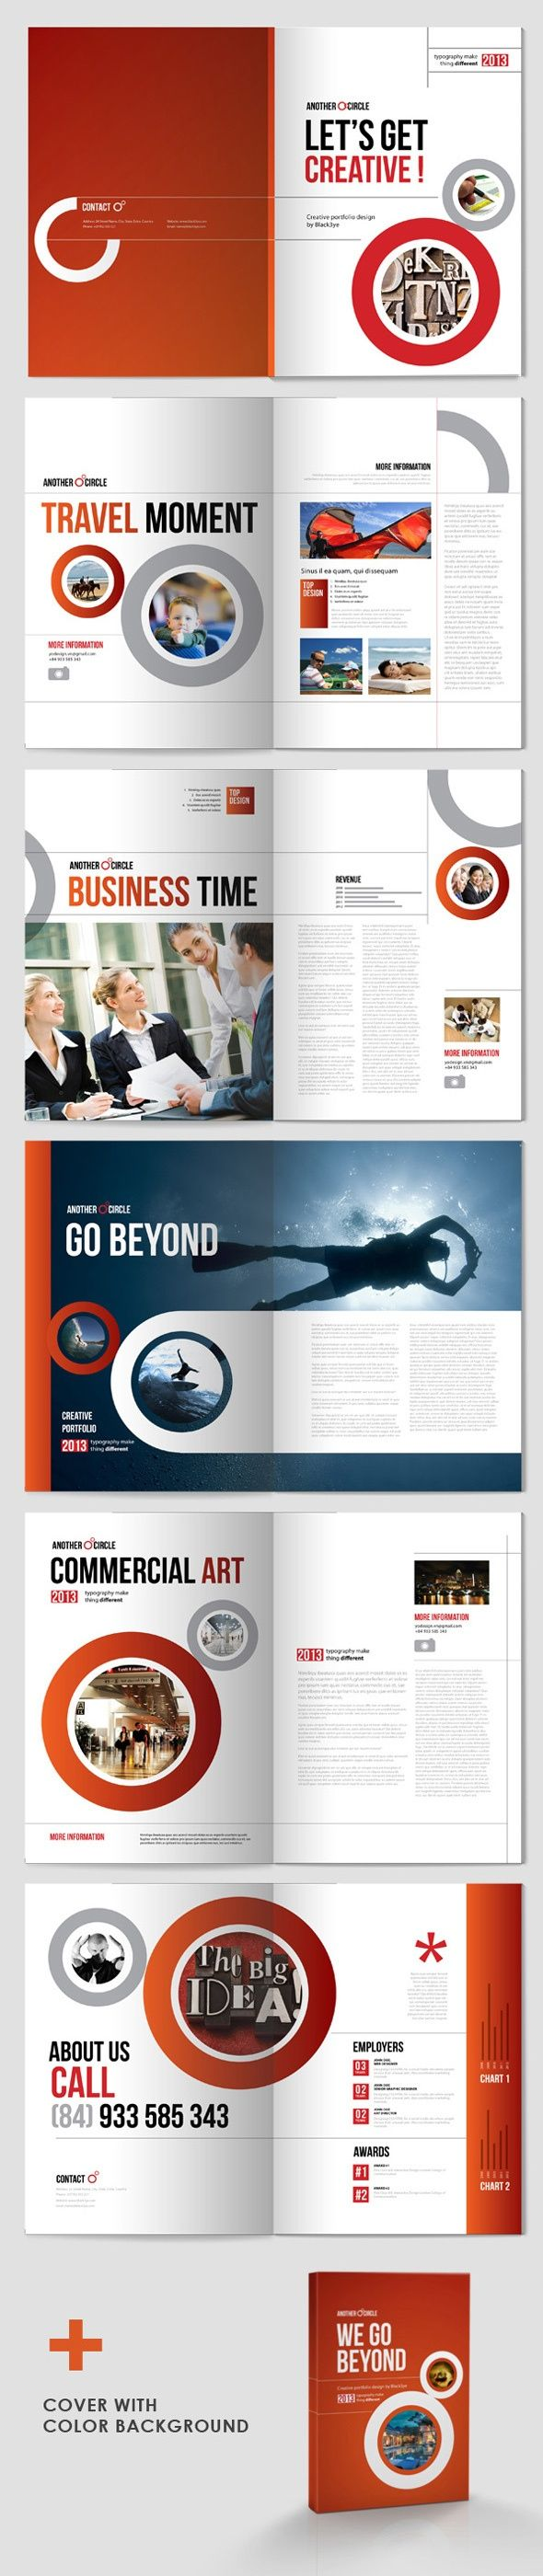 print design / editorial | Corporate Design Spreads